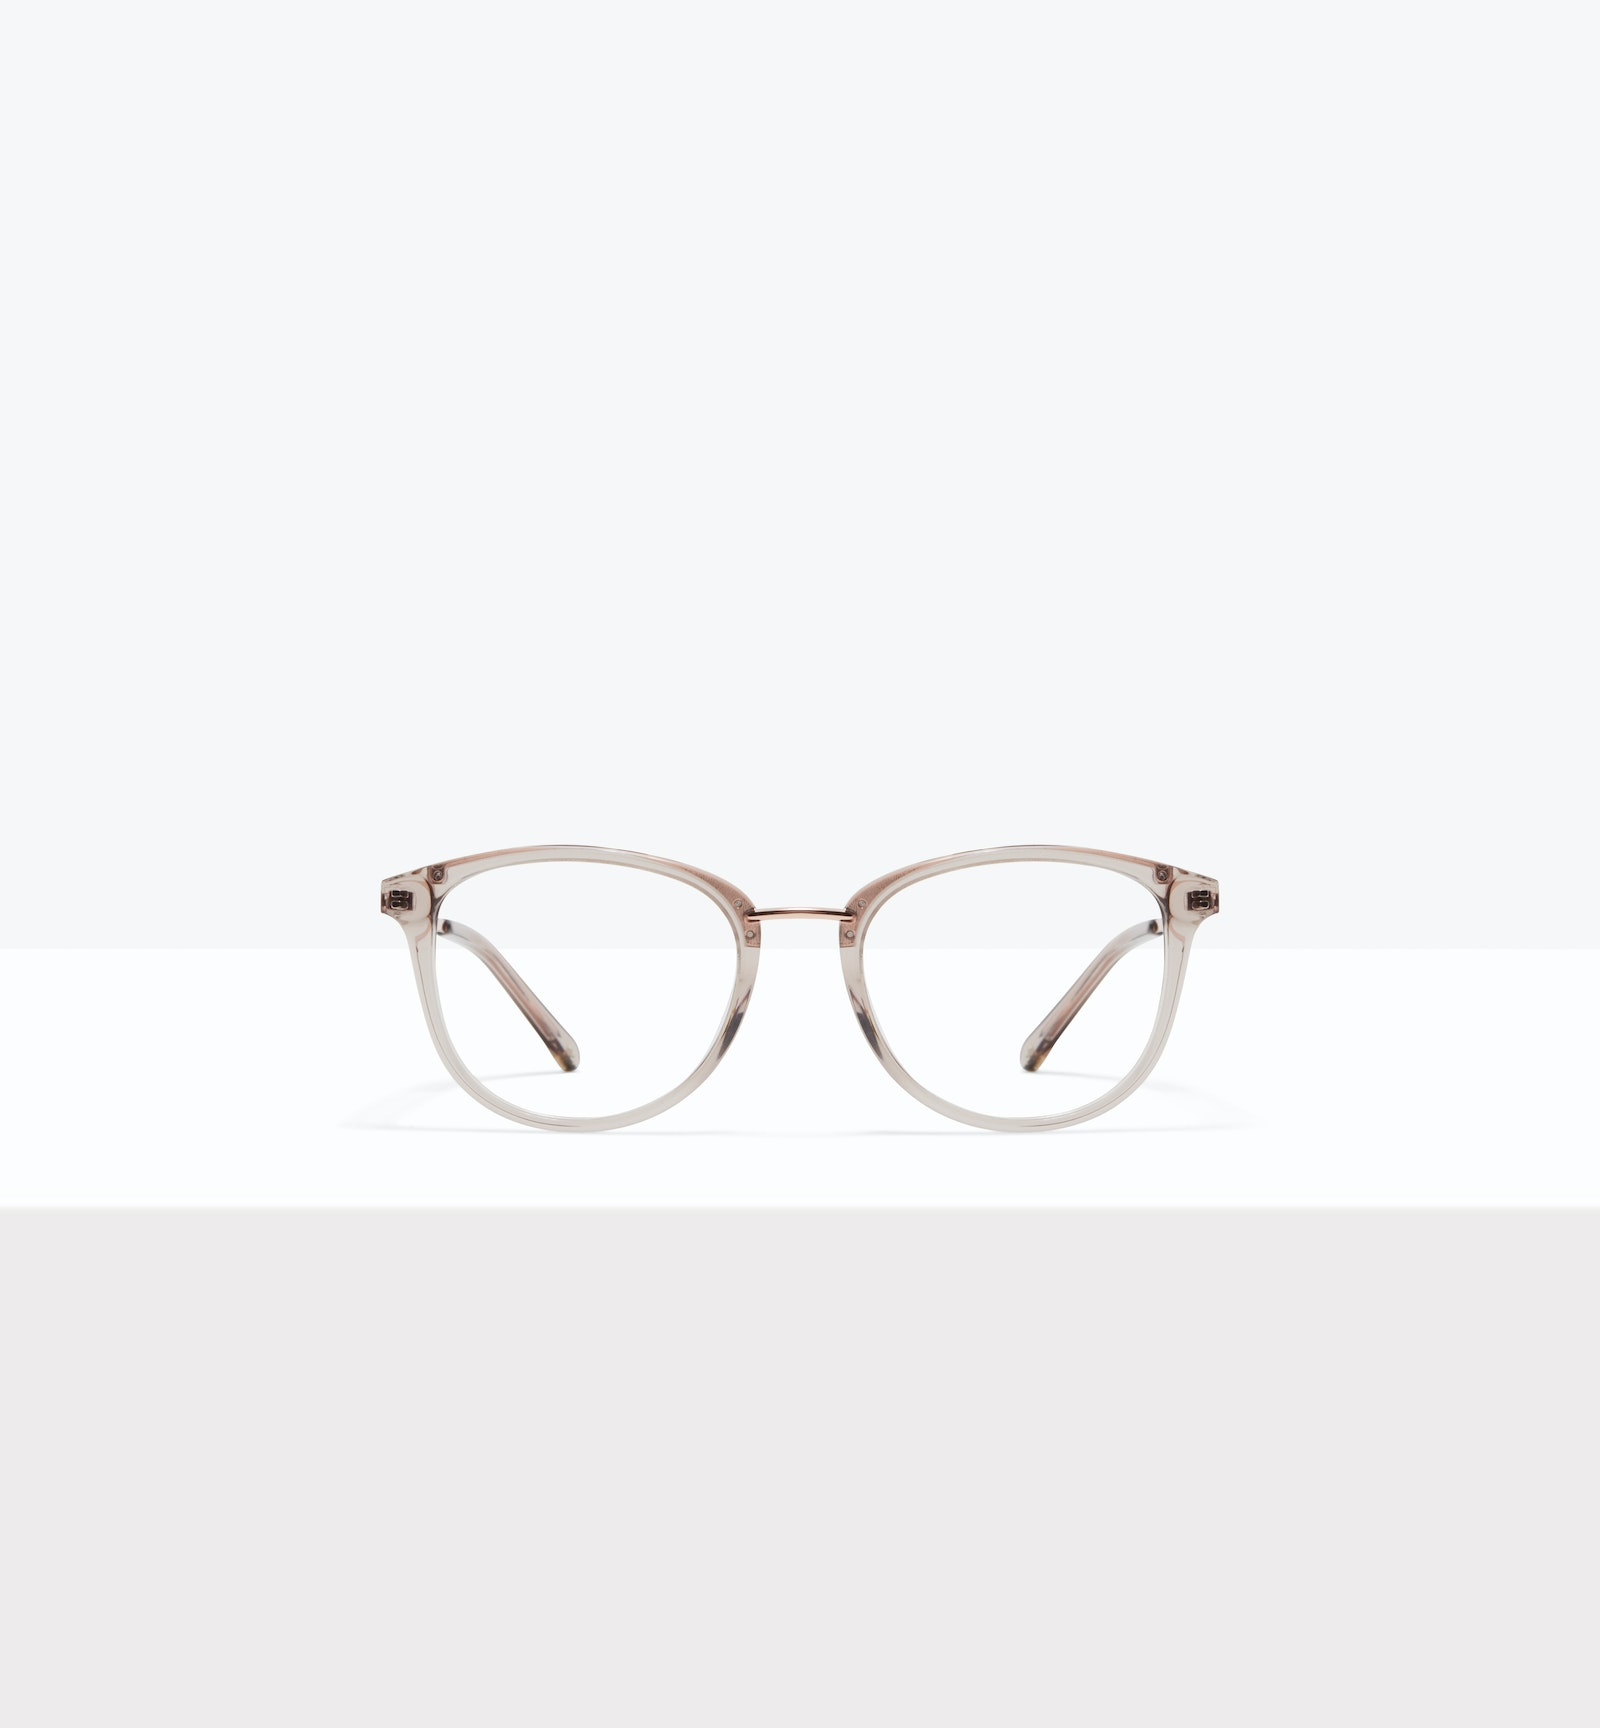 Affordable Fashion Glasses Square Round Eyeglasses Women Bella M Sand